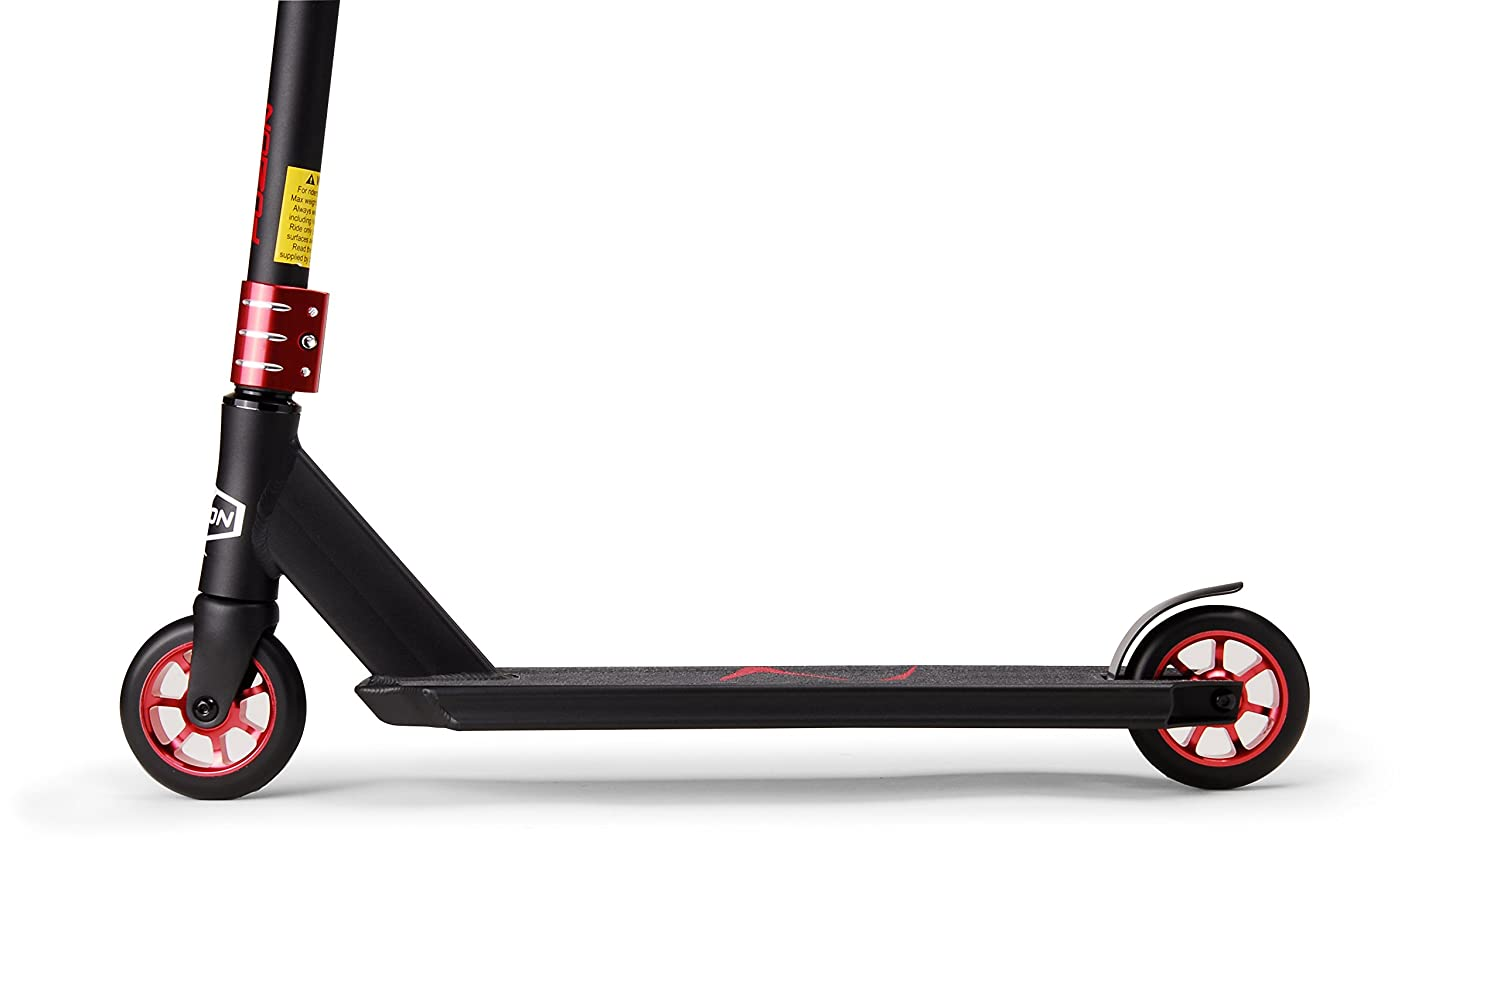 Amazon.com: Pro Scooter Fuzion Z300 completa: Sports & Outdoors